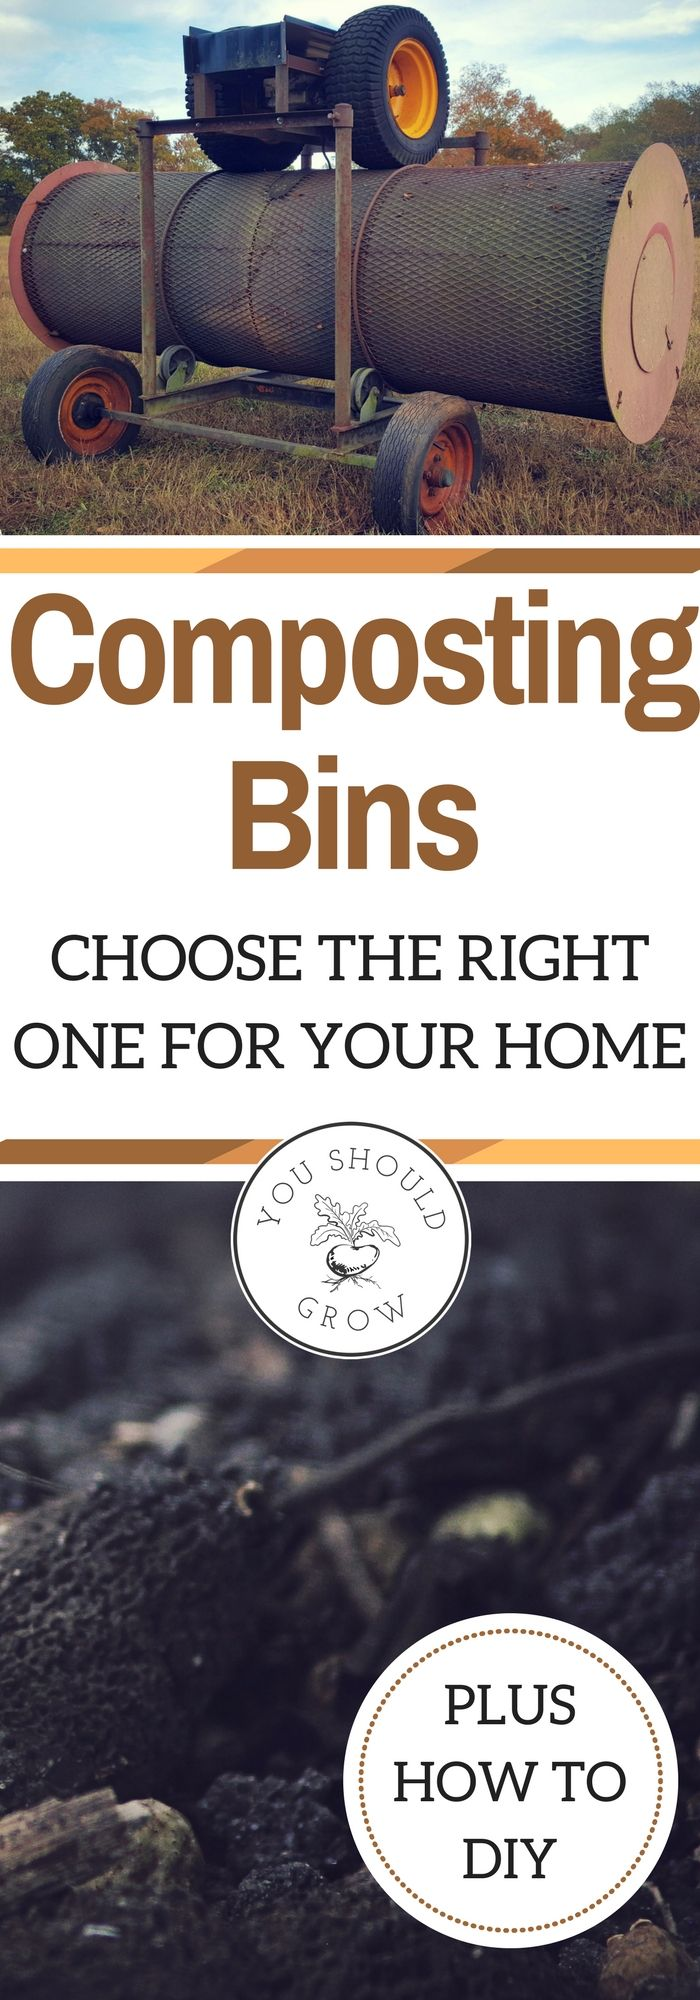 choosing a compost bin for your home garden what type of bin is right for